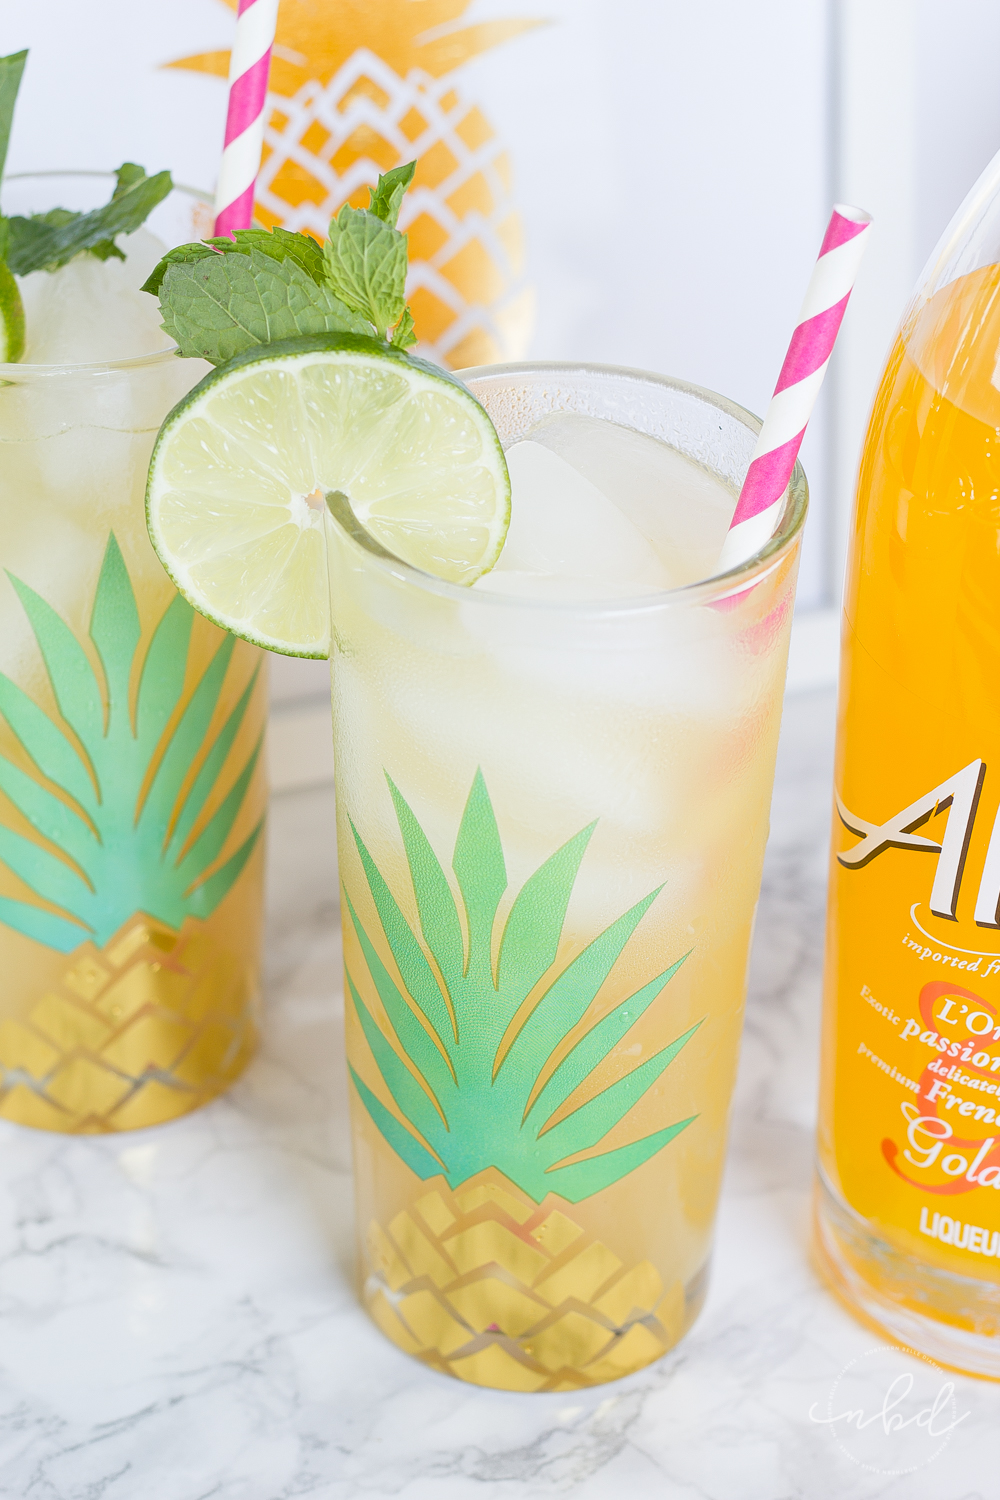 Gold Pineapple Passion Fever cocktail recipe with Alize Passion Gold